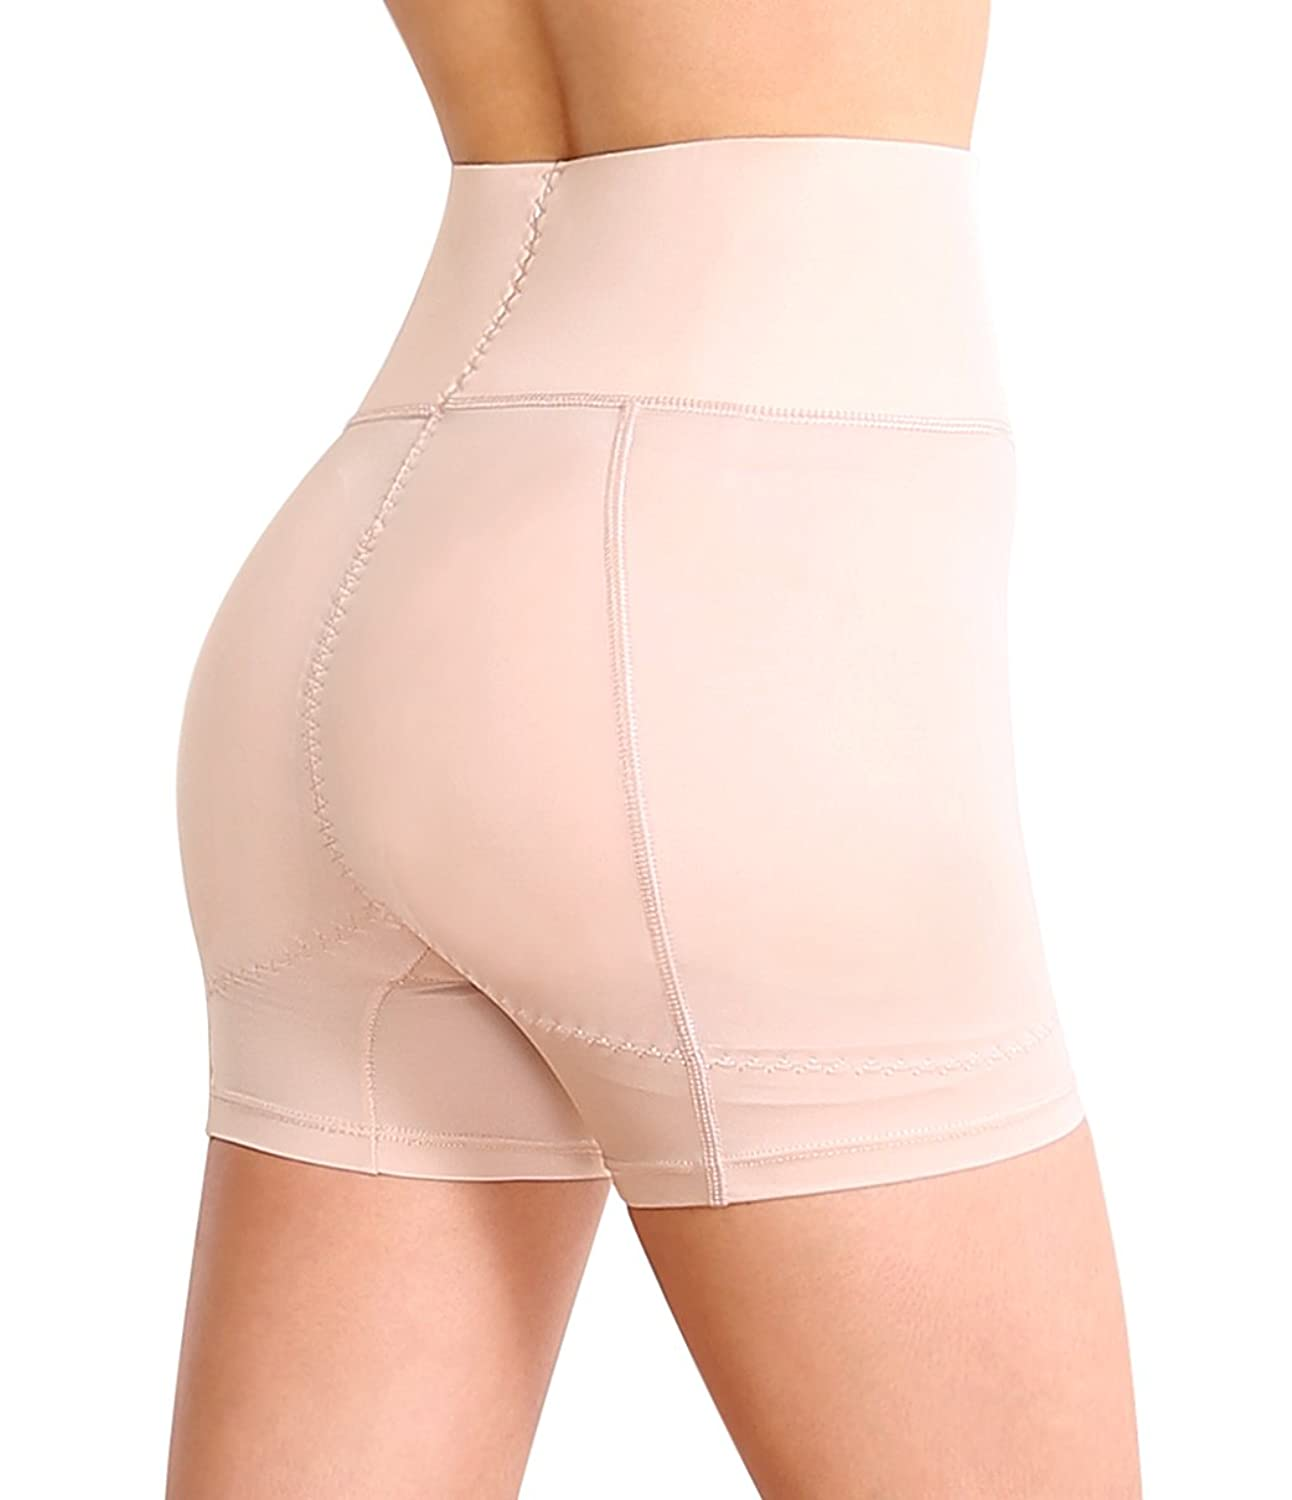 SODACODA Boyshort Foam Padded Hip and Butt Enhancer with Tummy Control and Waist Cincher Band Lowrise to Midrise Style - Warm, Thick Autumn & Winter Collection (XS-XXL)